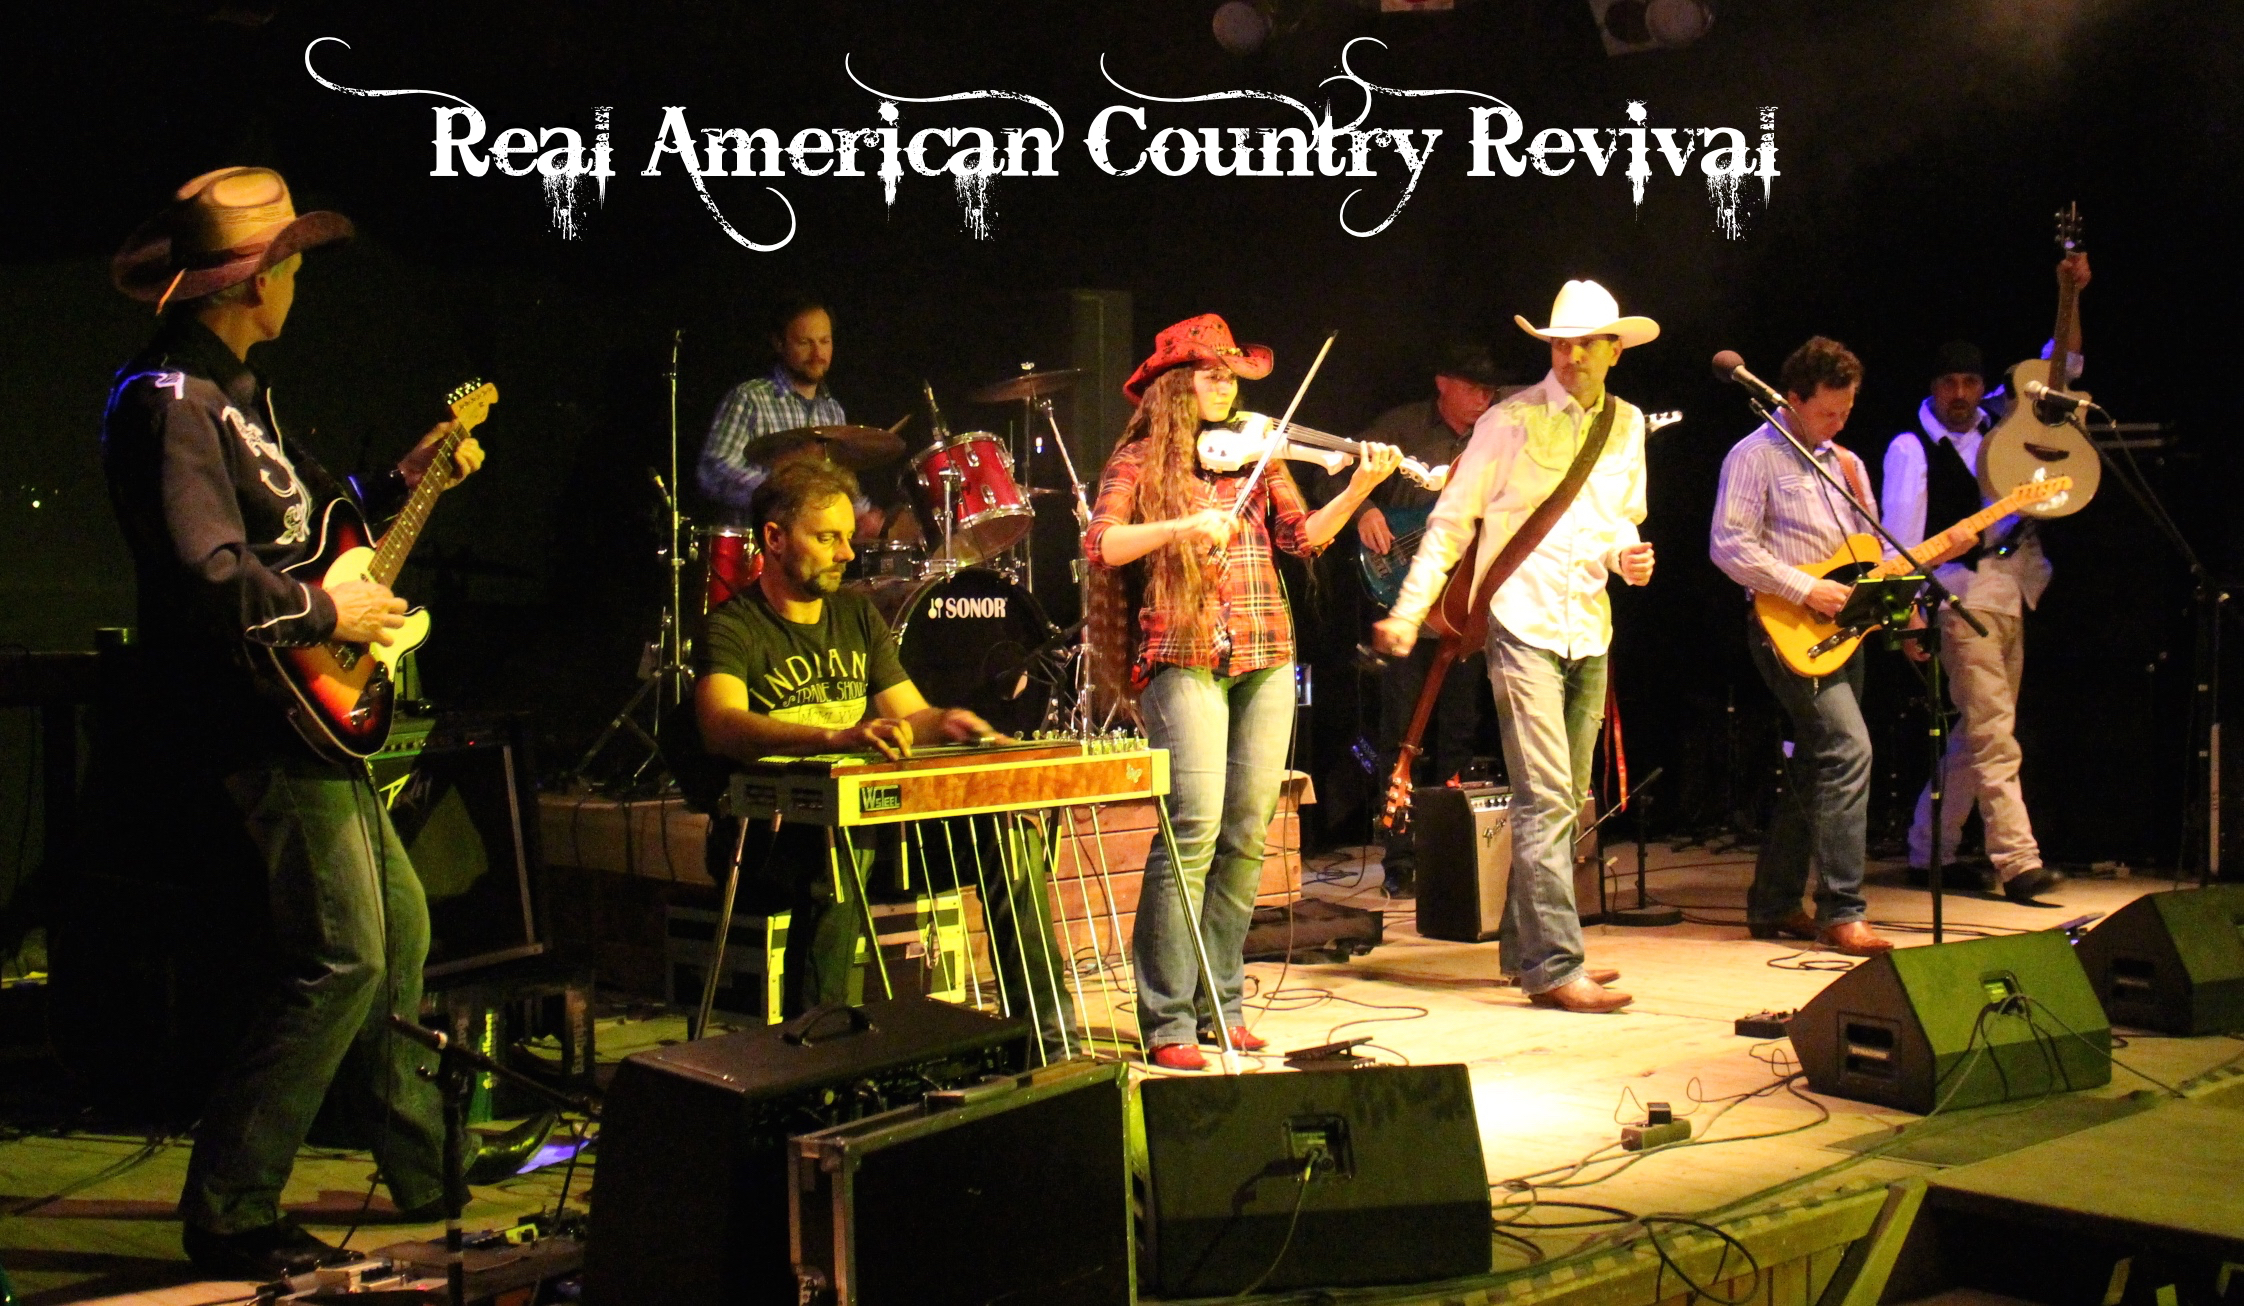 Real American Country Revival